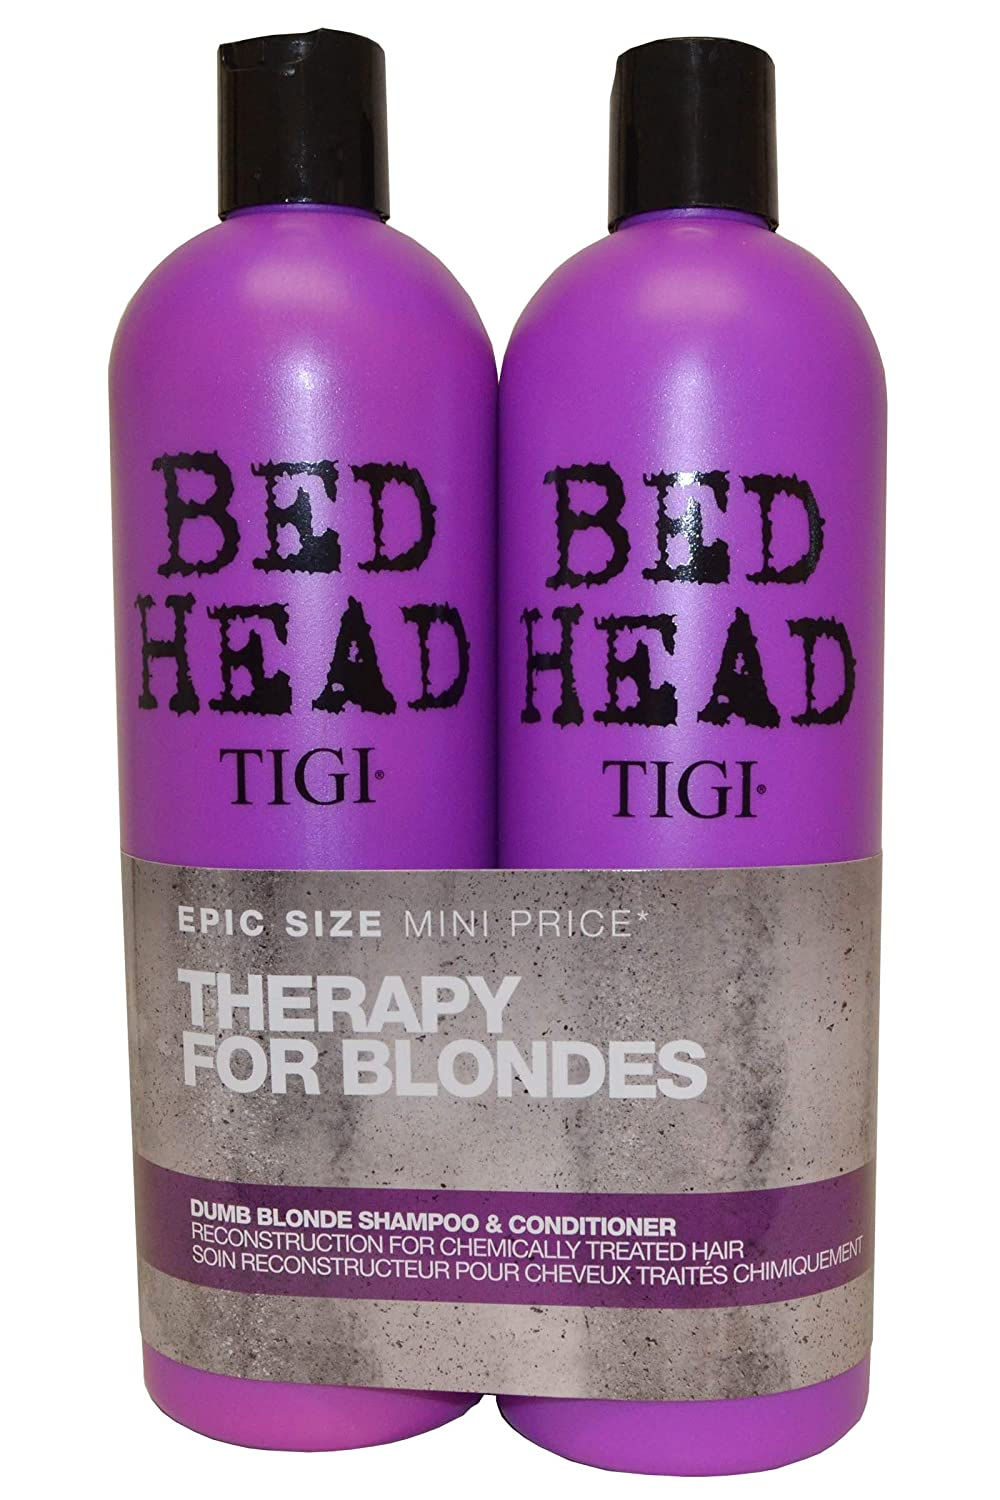 BED HEAD by TIGI Dumb Blonde Tween Duo Repair Shampoo & Reconstructor Conditioner for Coloured Hair - 750 ml (Pack of 2) 615908951059 S-TG-144-01